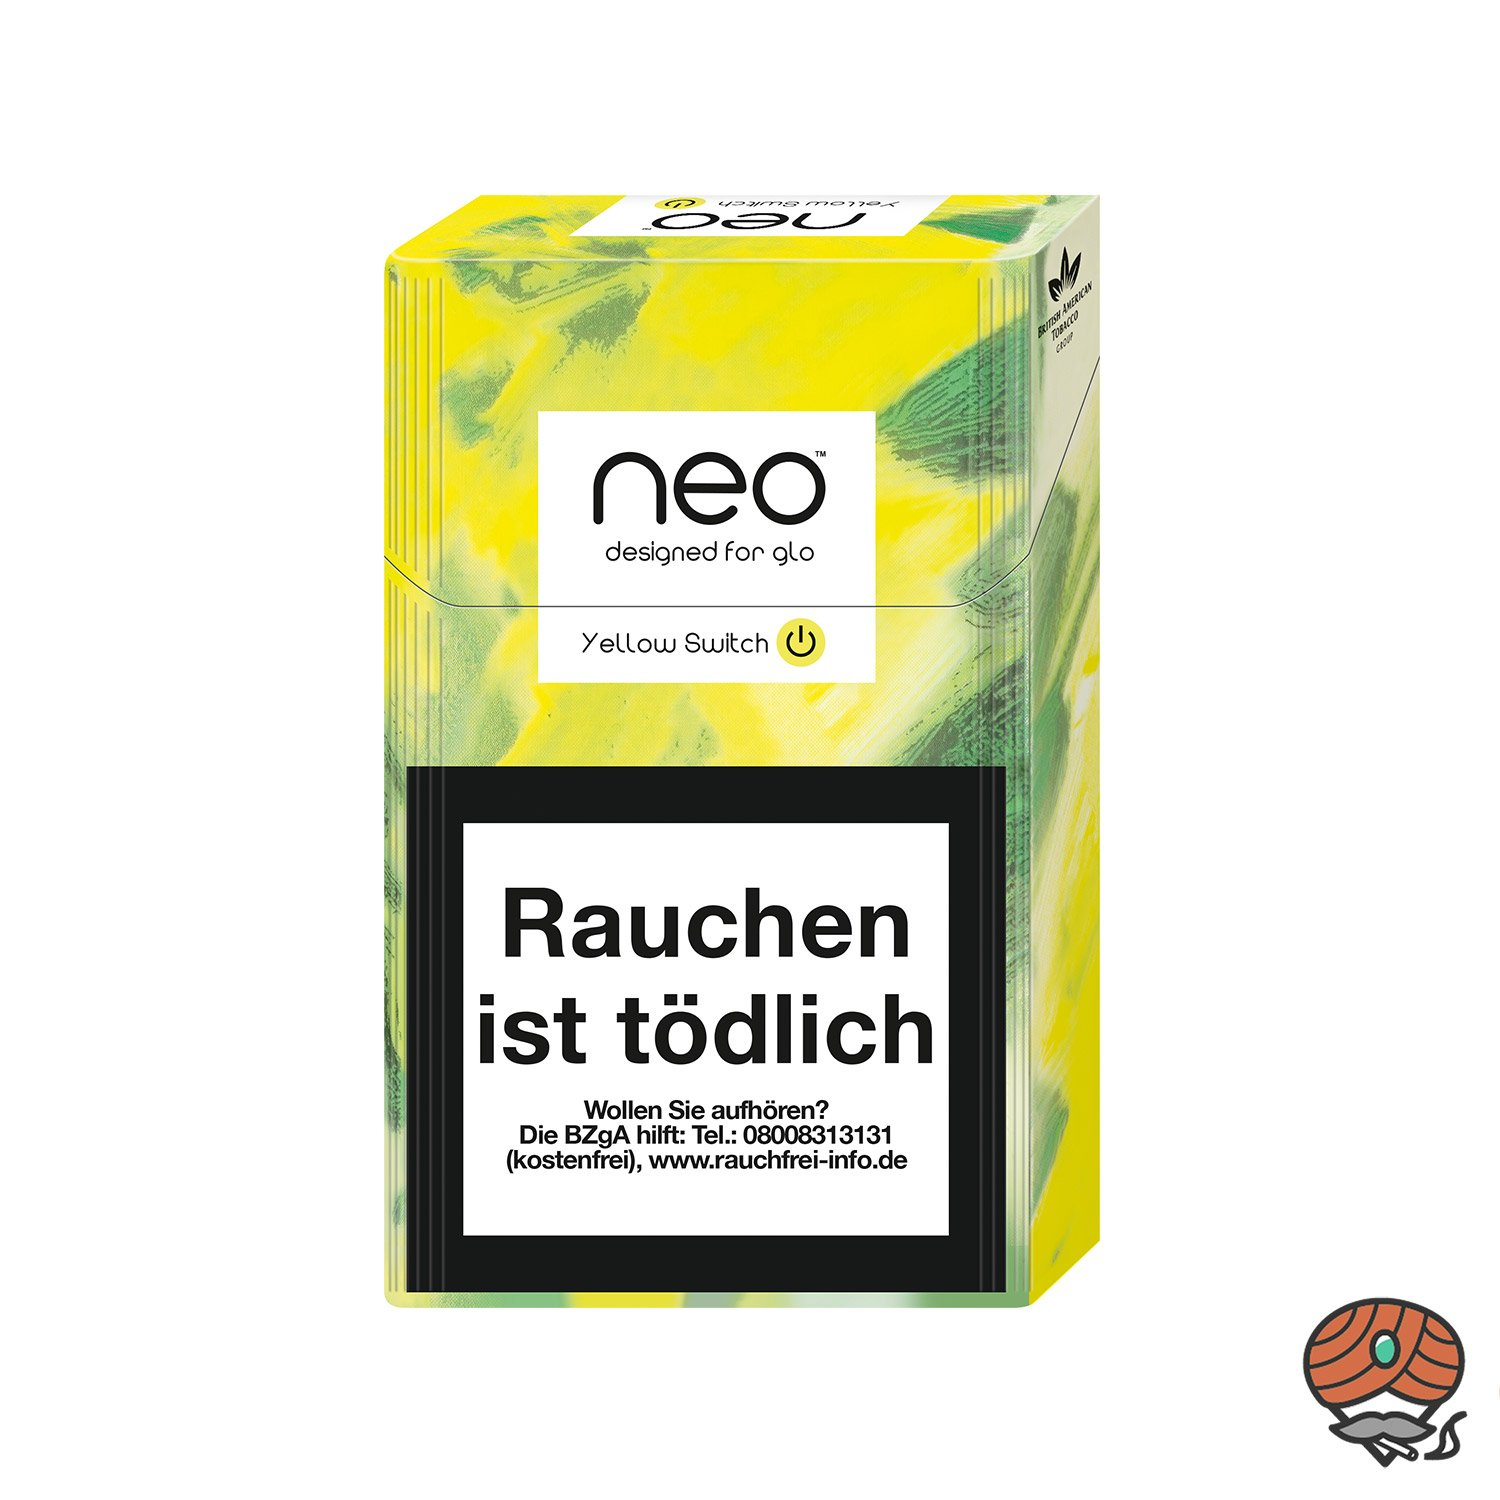 neo Yellow Switch für GLO - Tabak Sticks 20 Stück